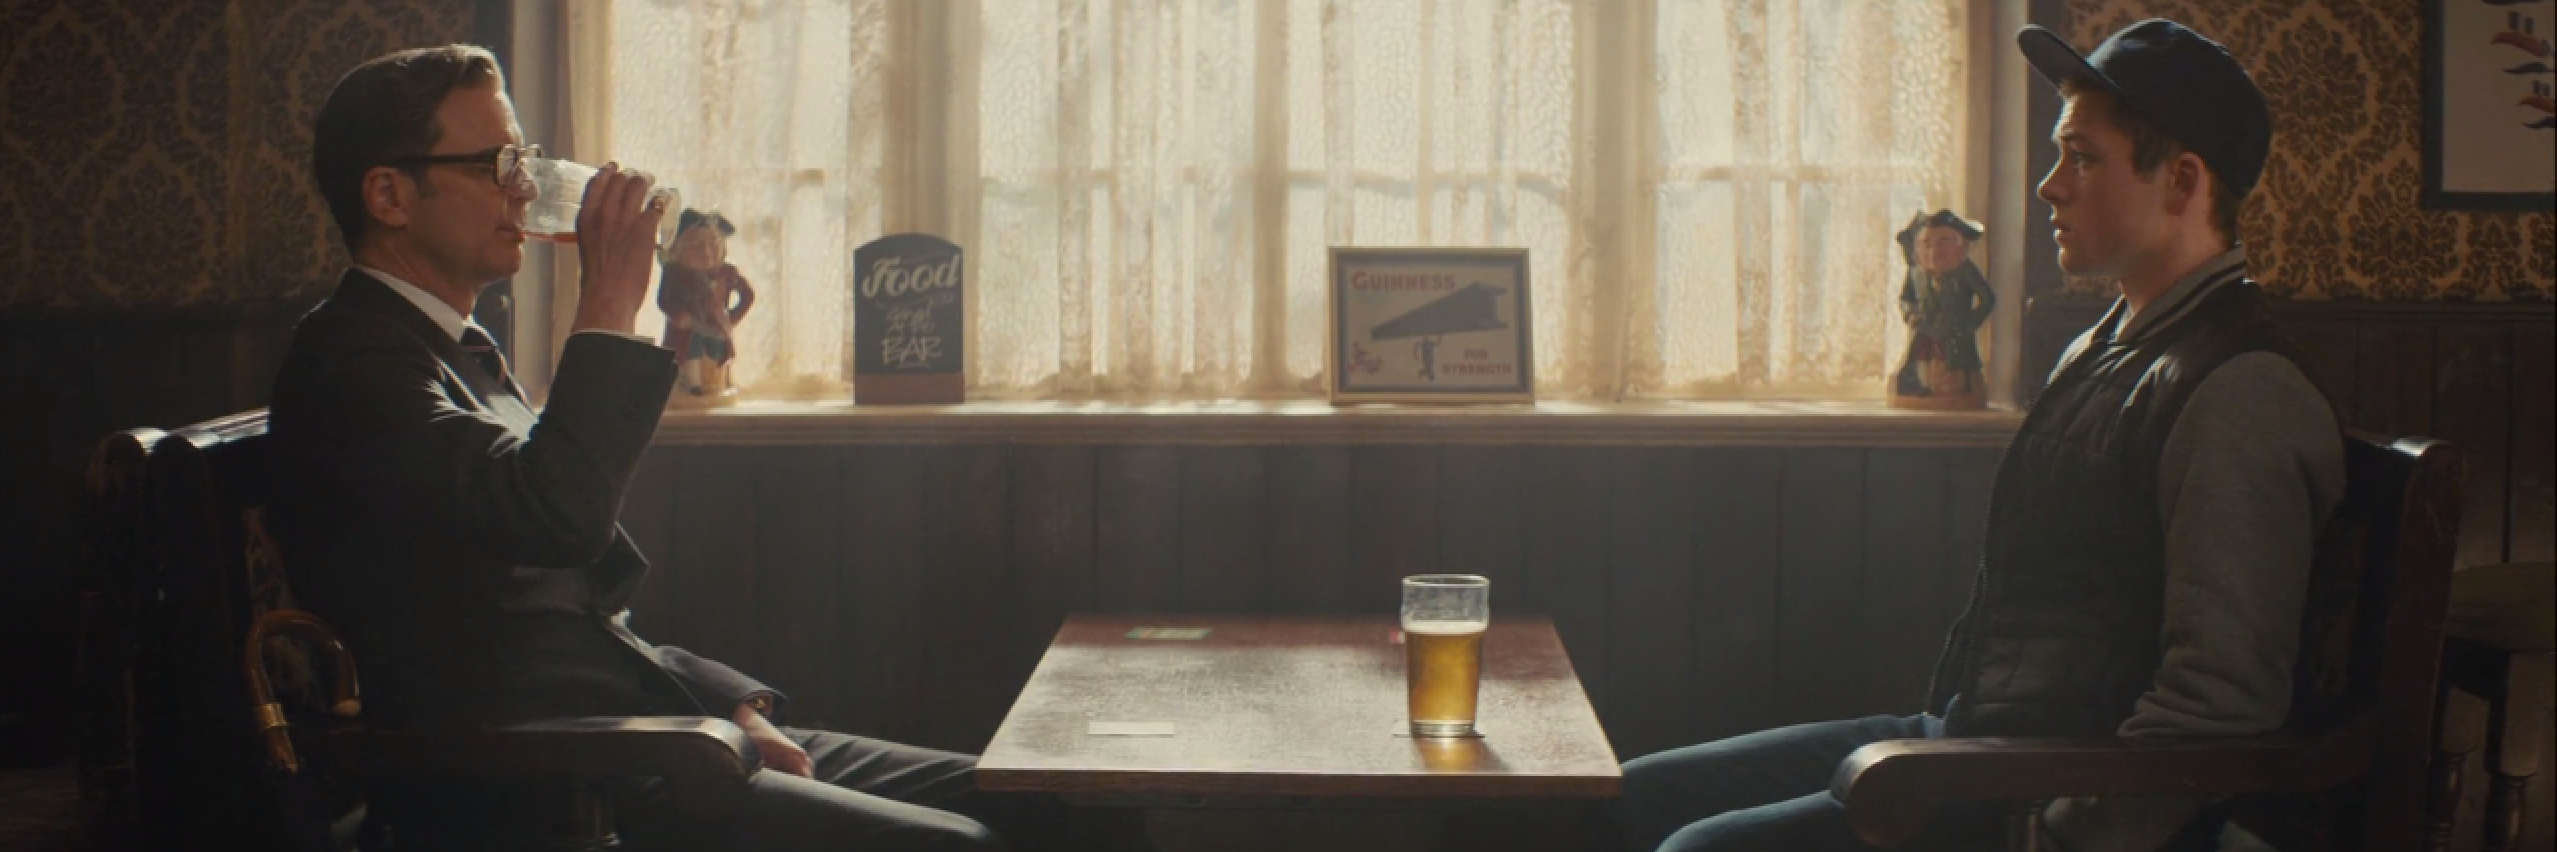 Eggsy and Harry from Kingsman sit in a pub, drinking beer.